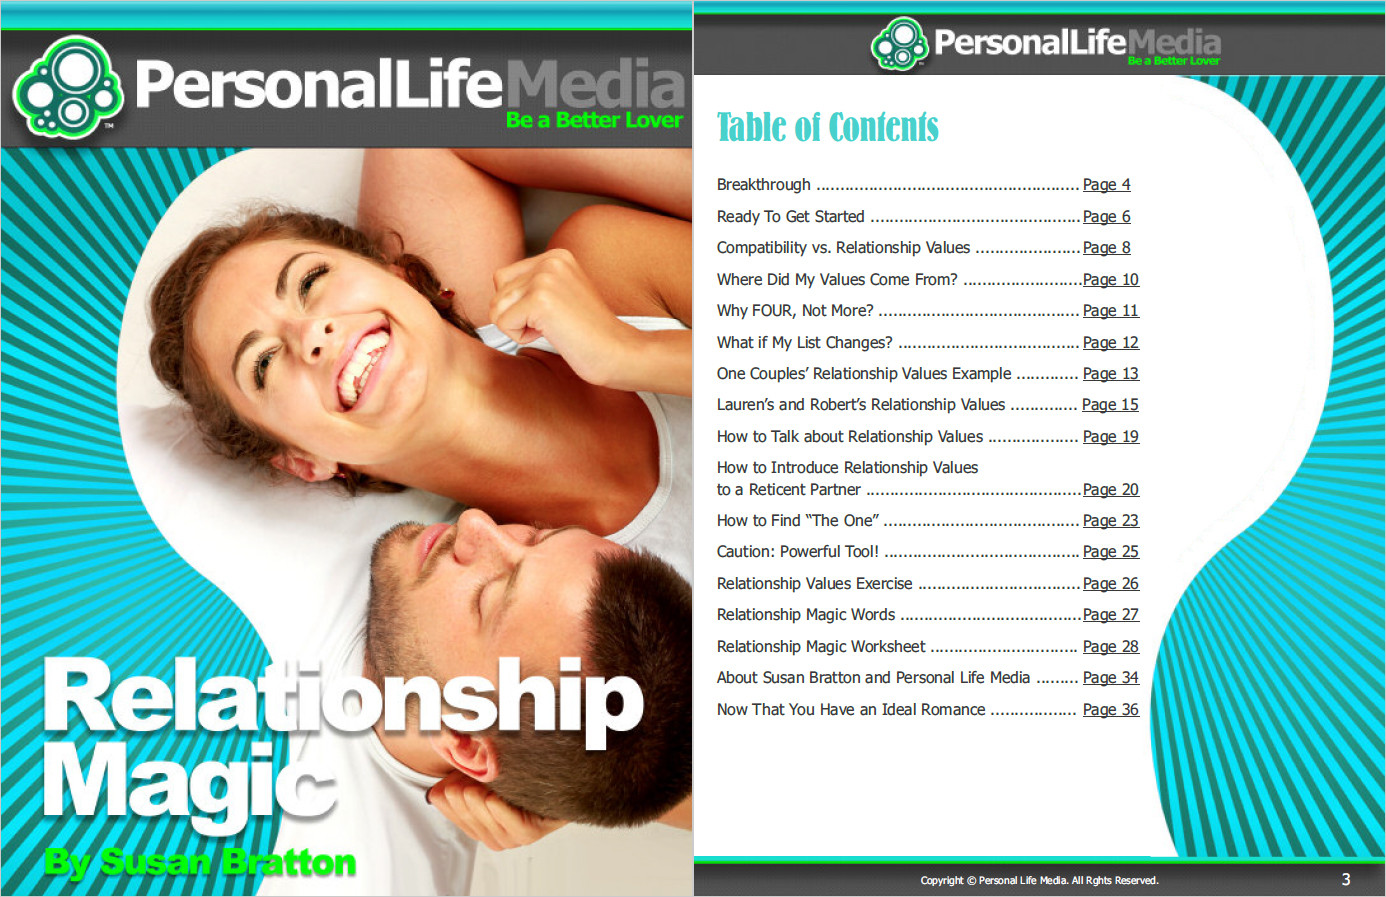 Relationship Magic Table of Contents